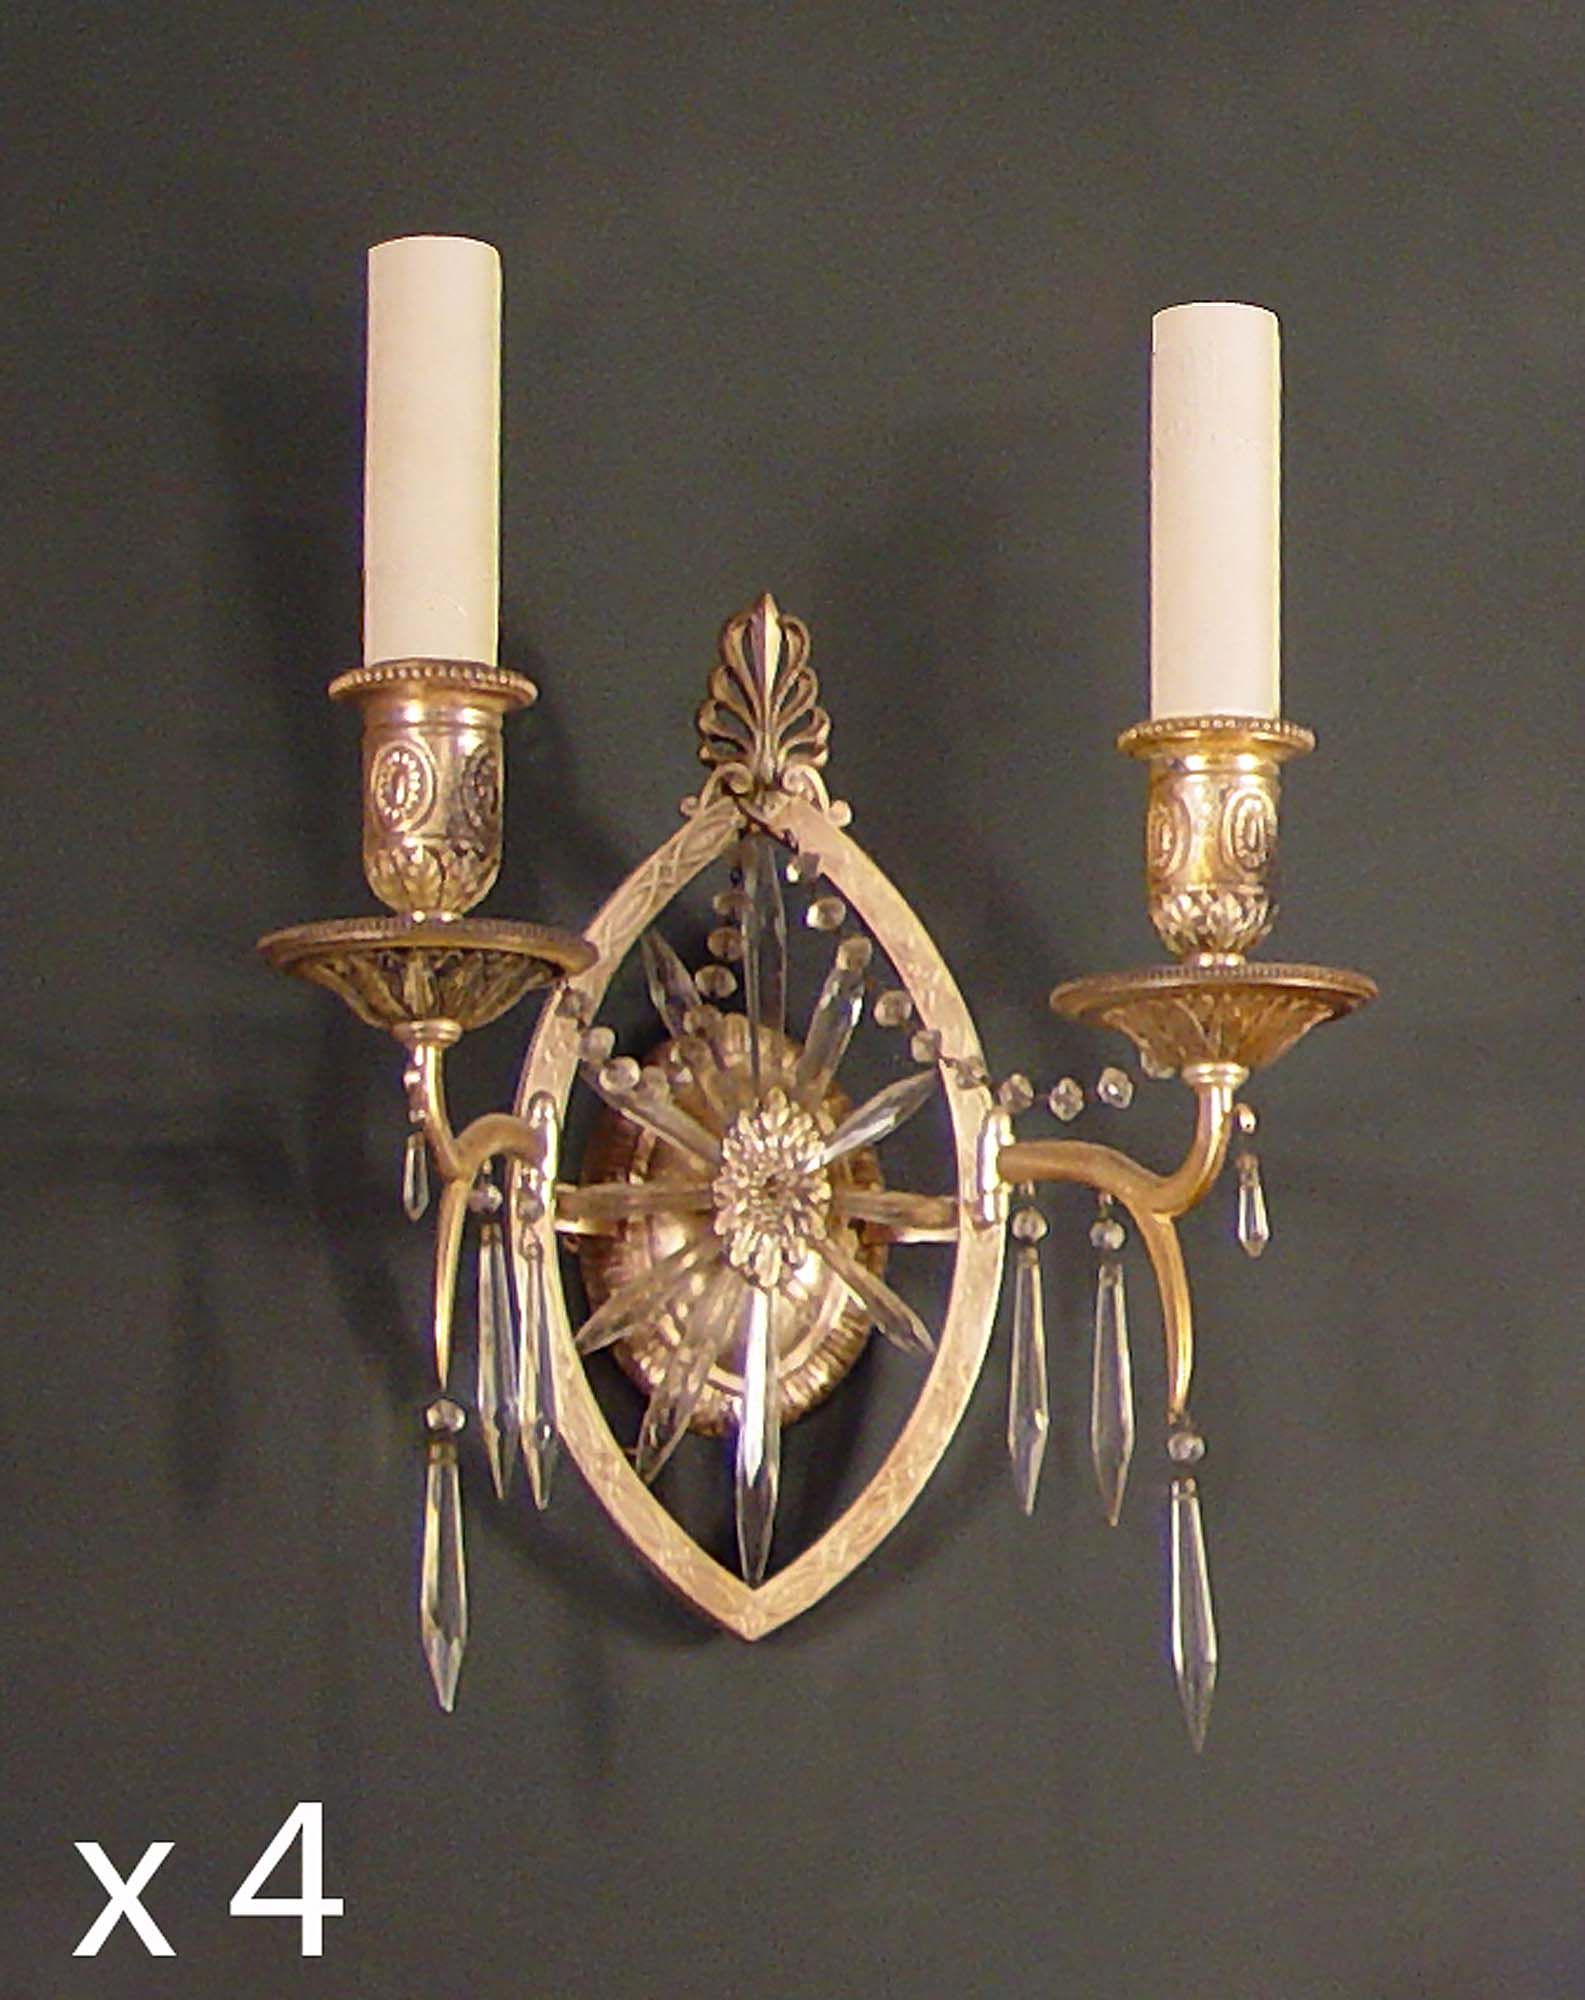 Antique Georgian Wall Sconces : Antique set four wall lights, sconces English Georgian silver plated Robert Adam style.